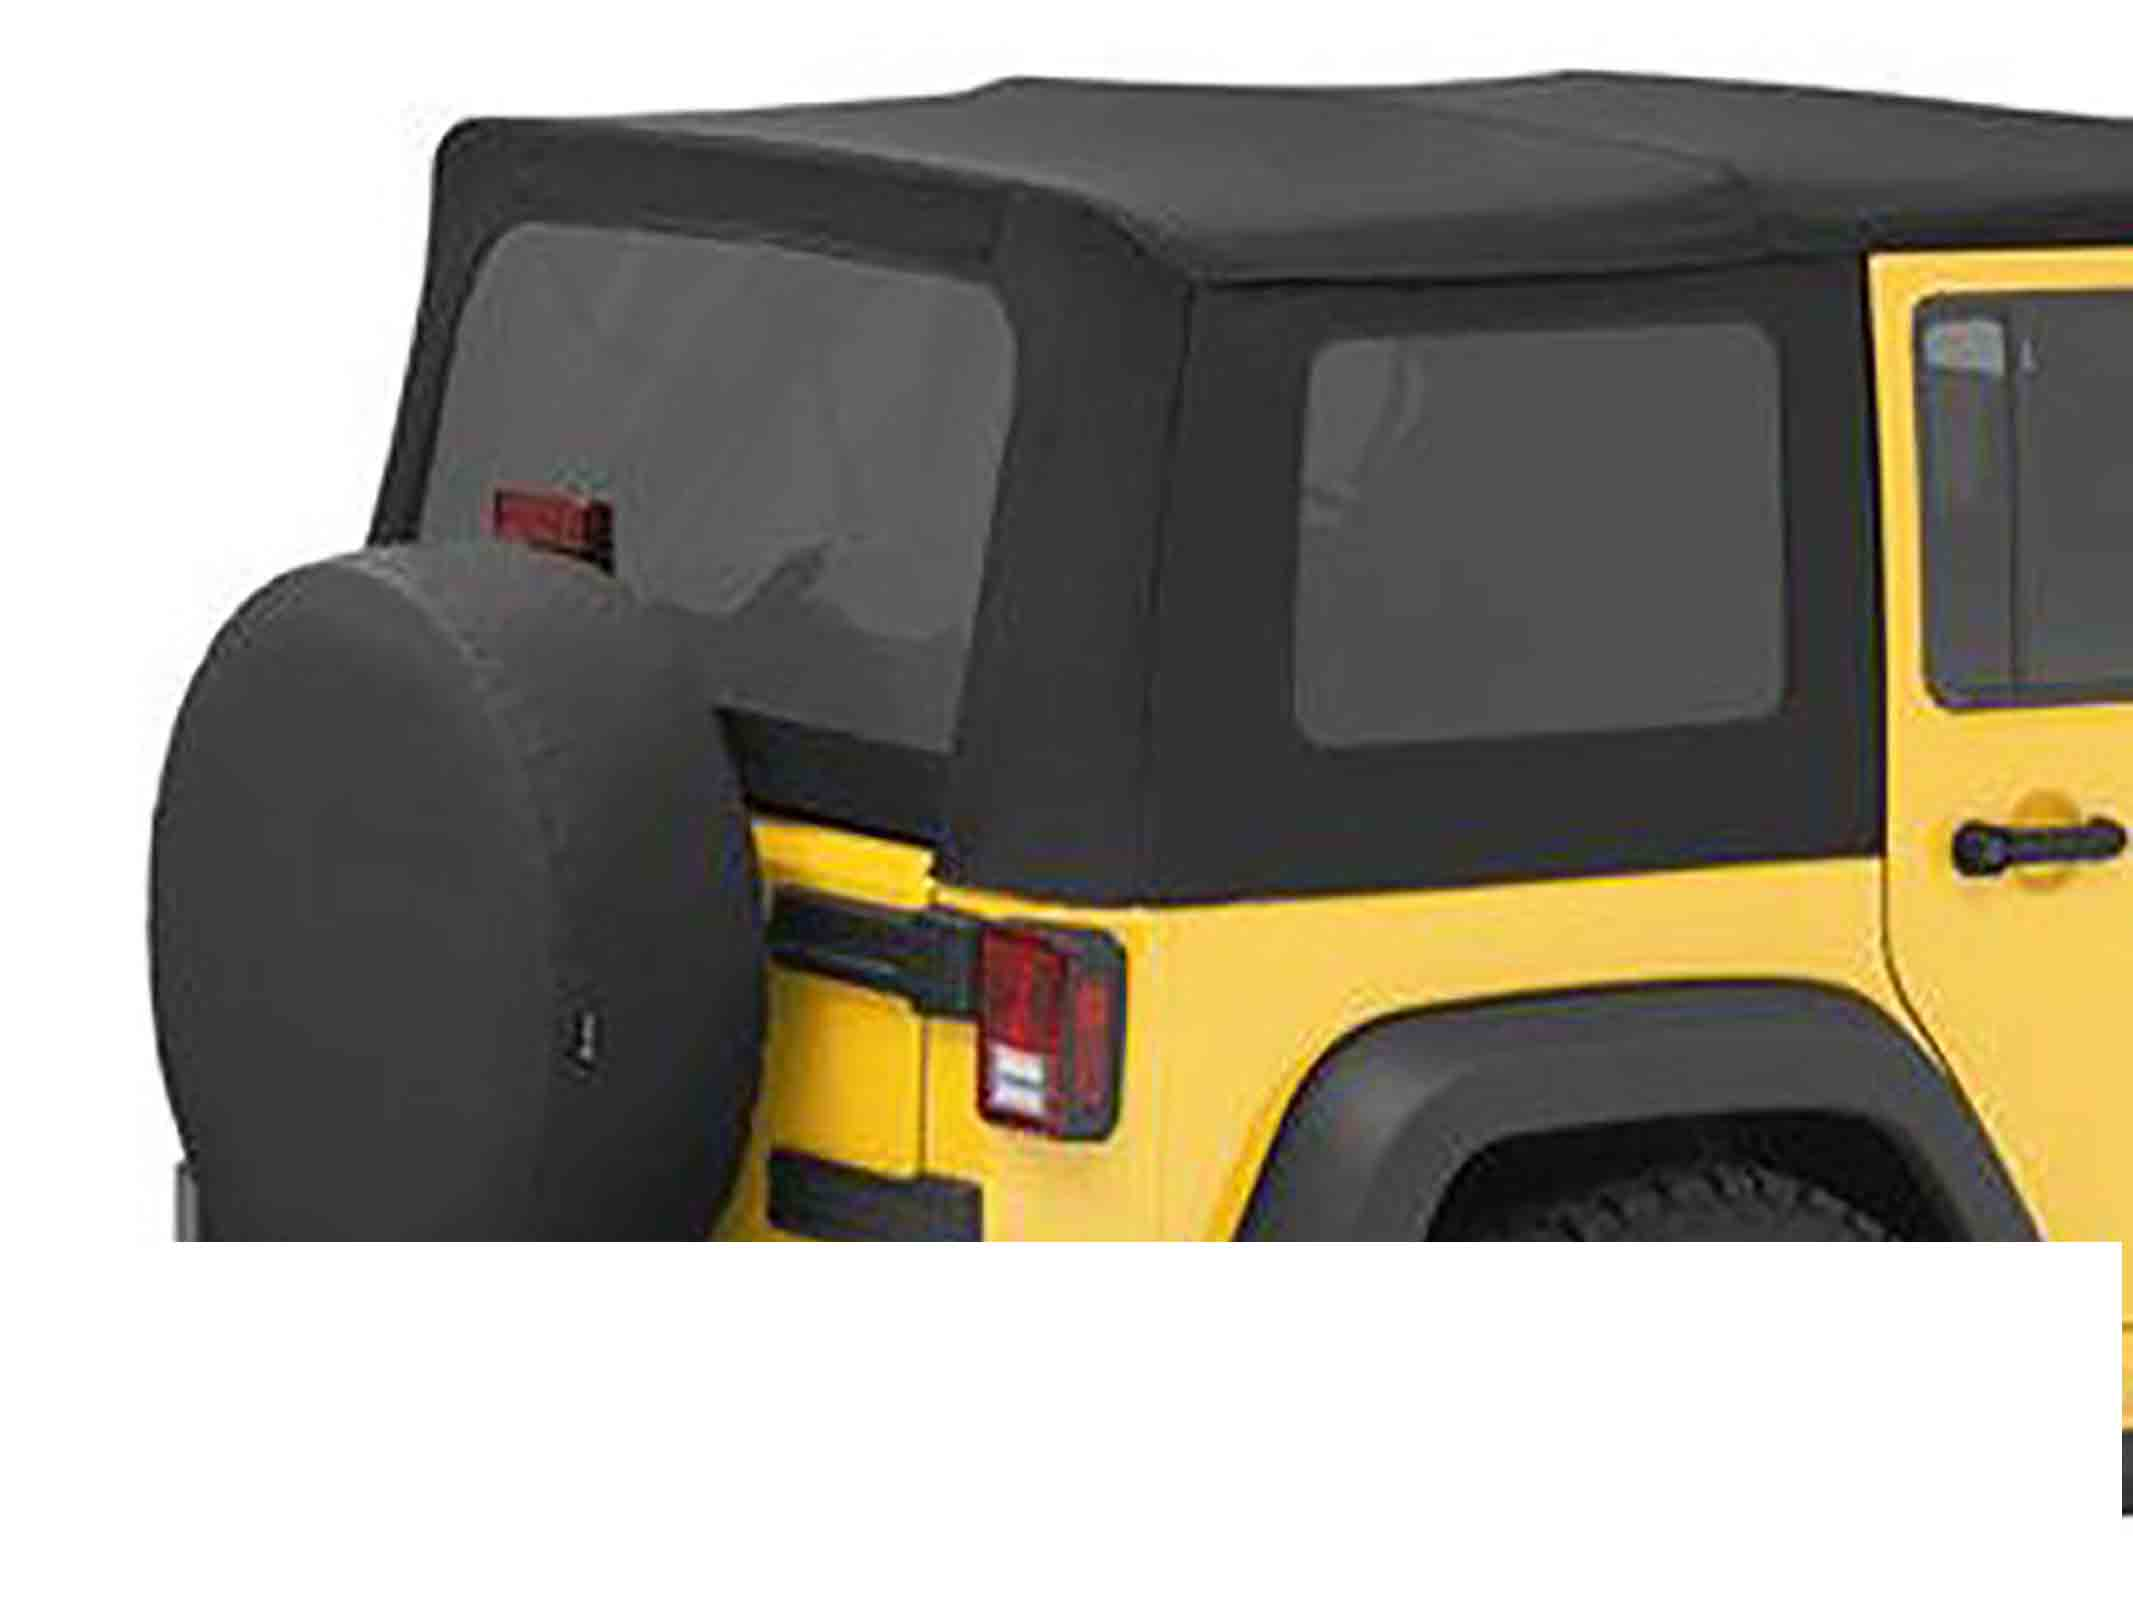 Vetri scuri wrangler jk 07 10 4 porte adatto per softtop soft top capottina originale ricambi jeep